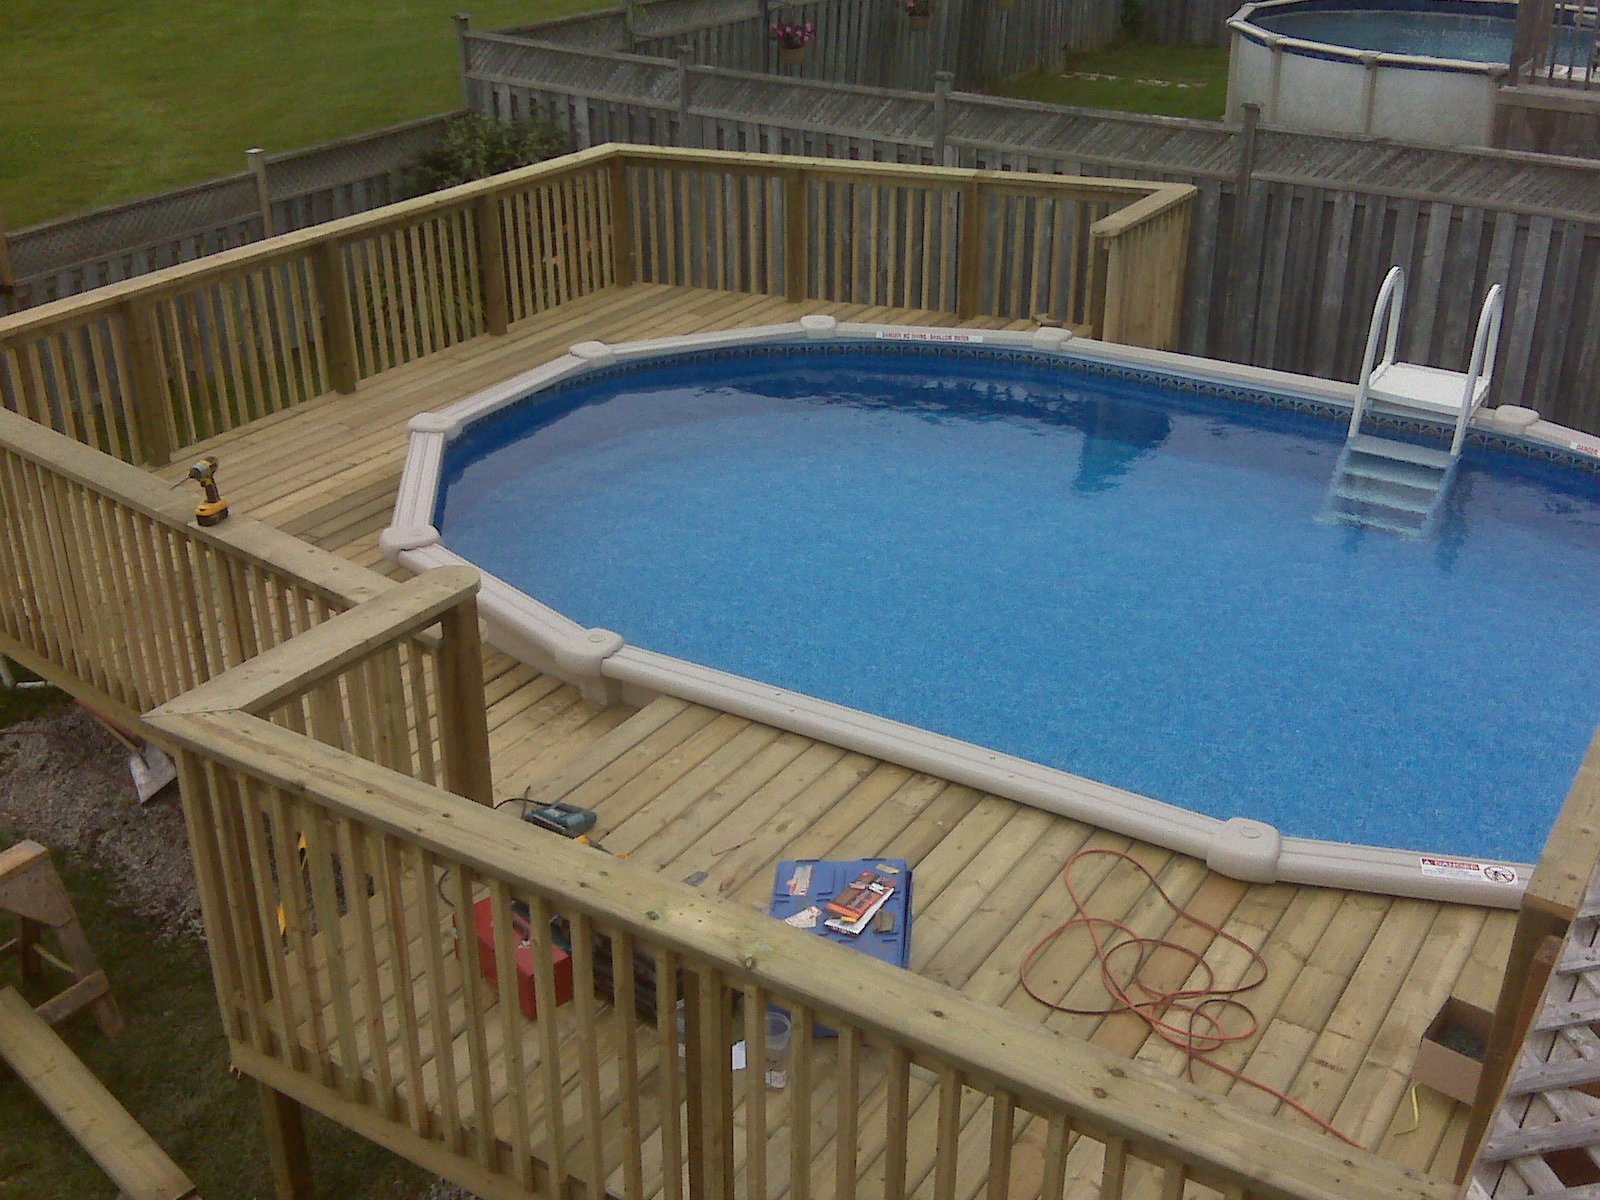 Swimming pool designs with decking